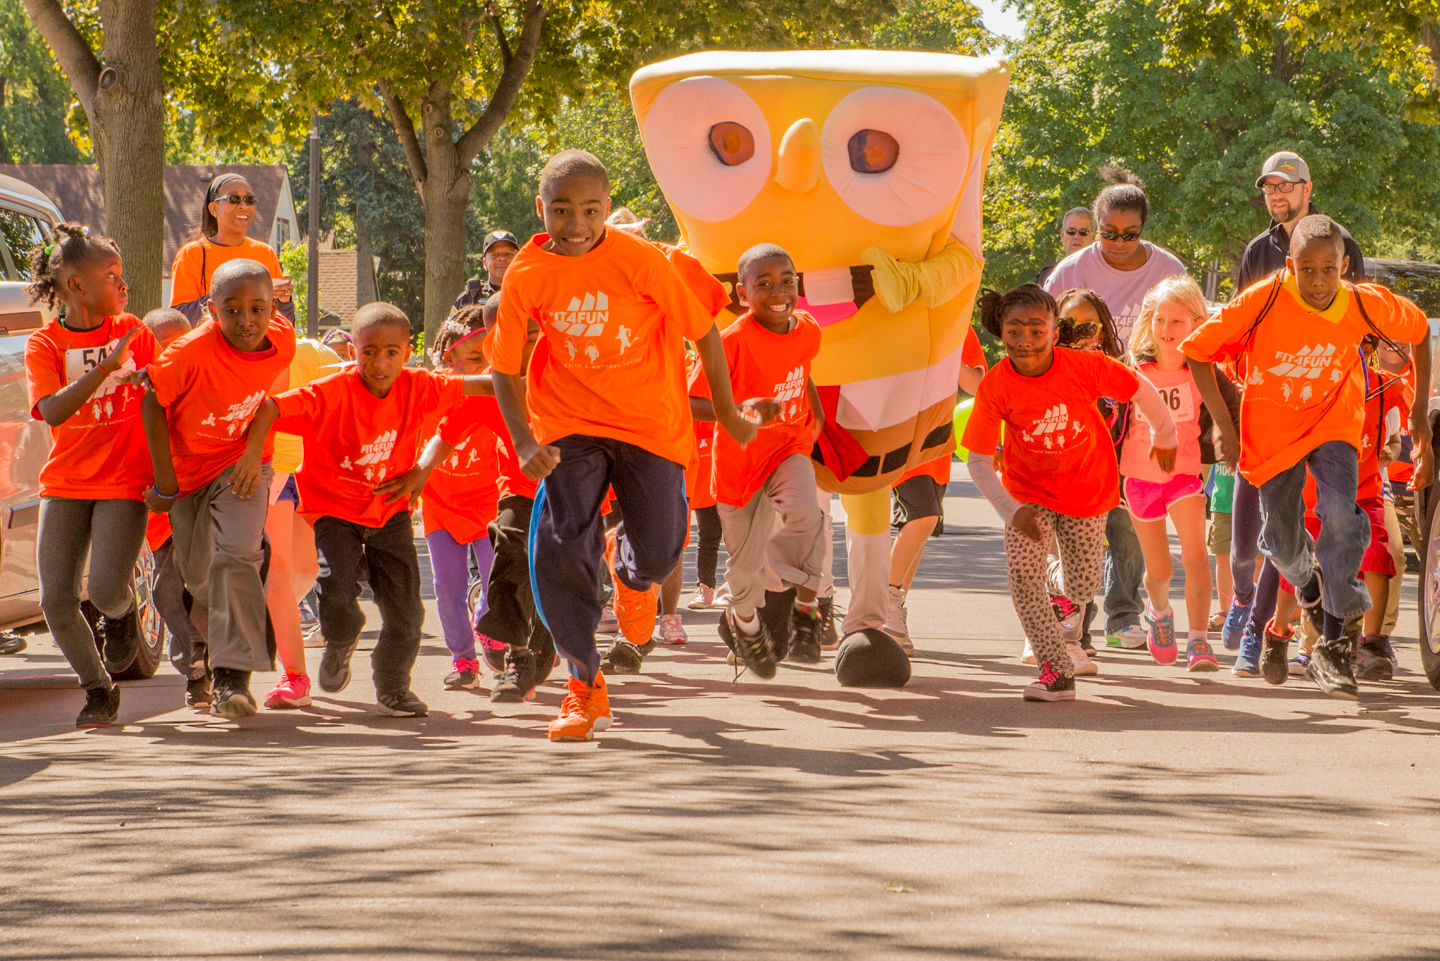 Kids running in street with mascot